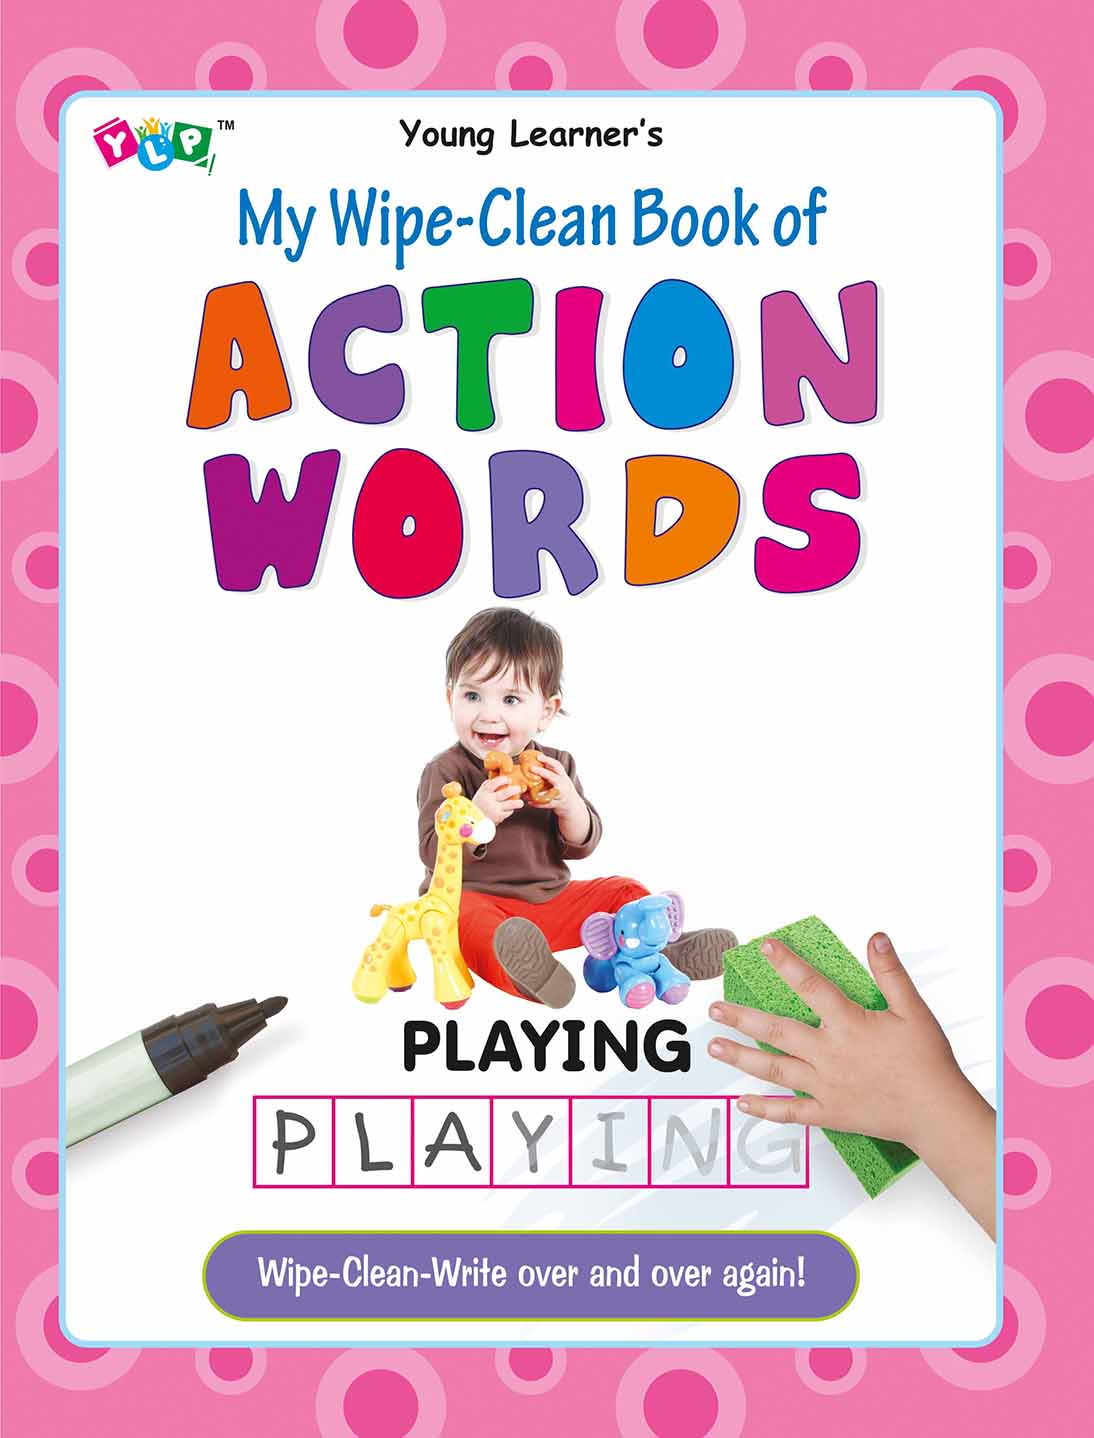 My Wipe-Clean Book of Action Words